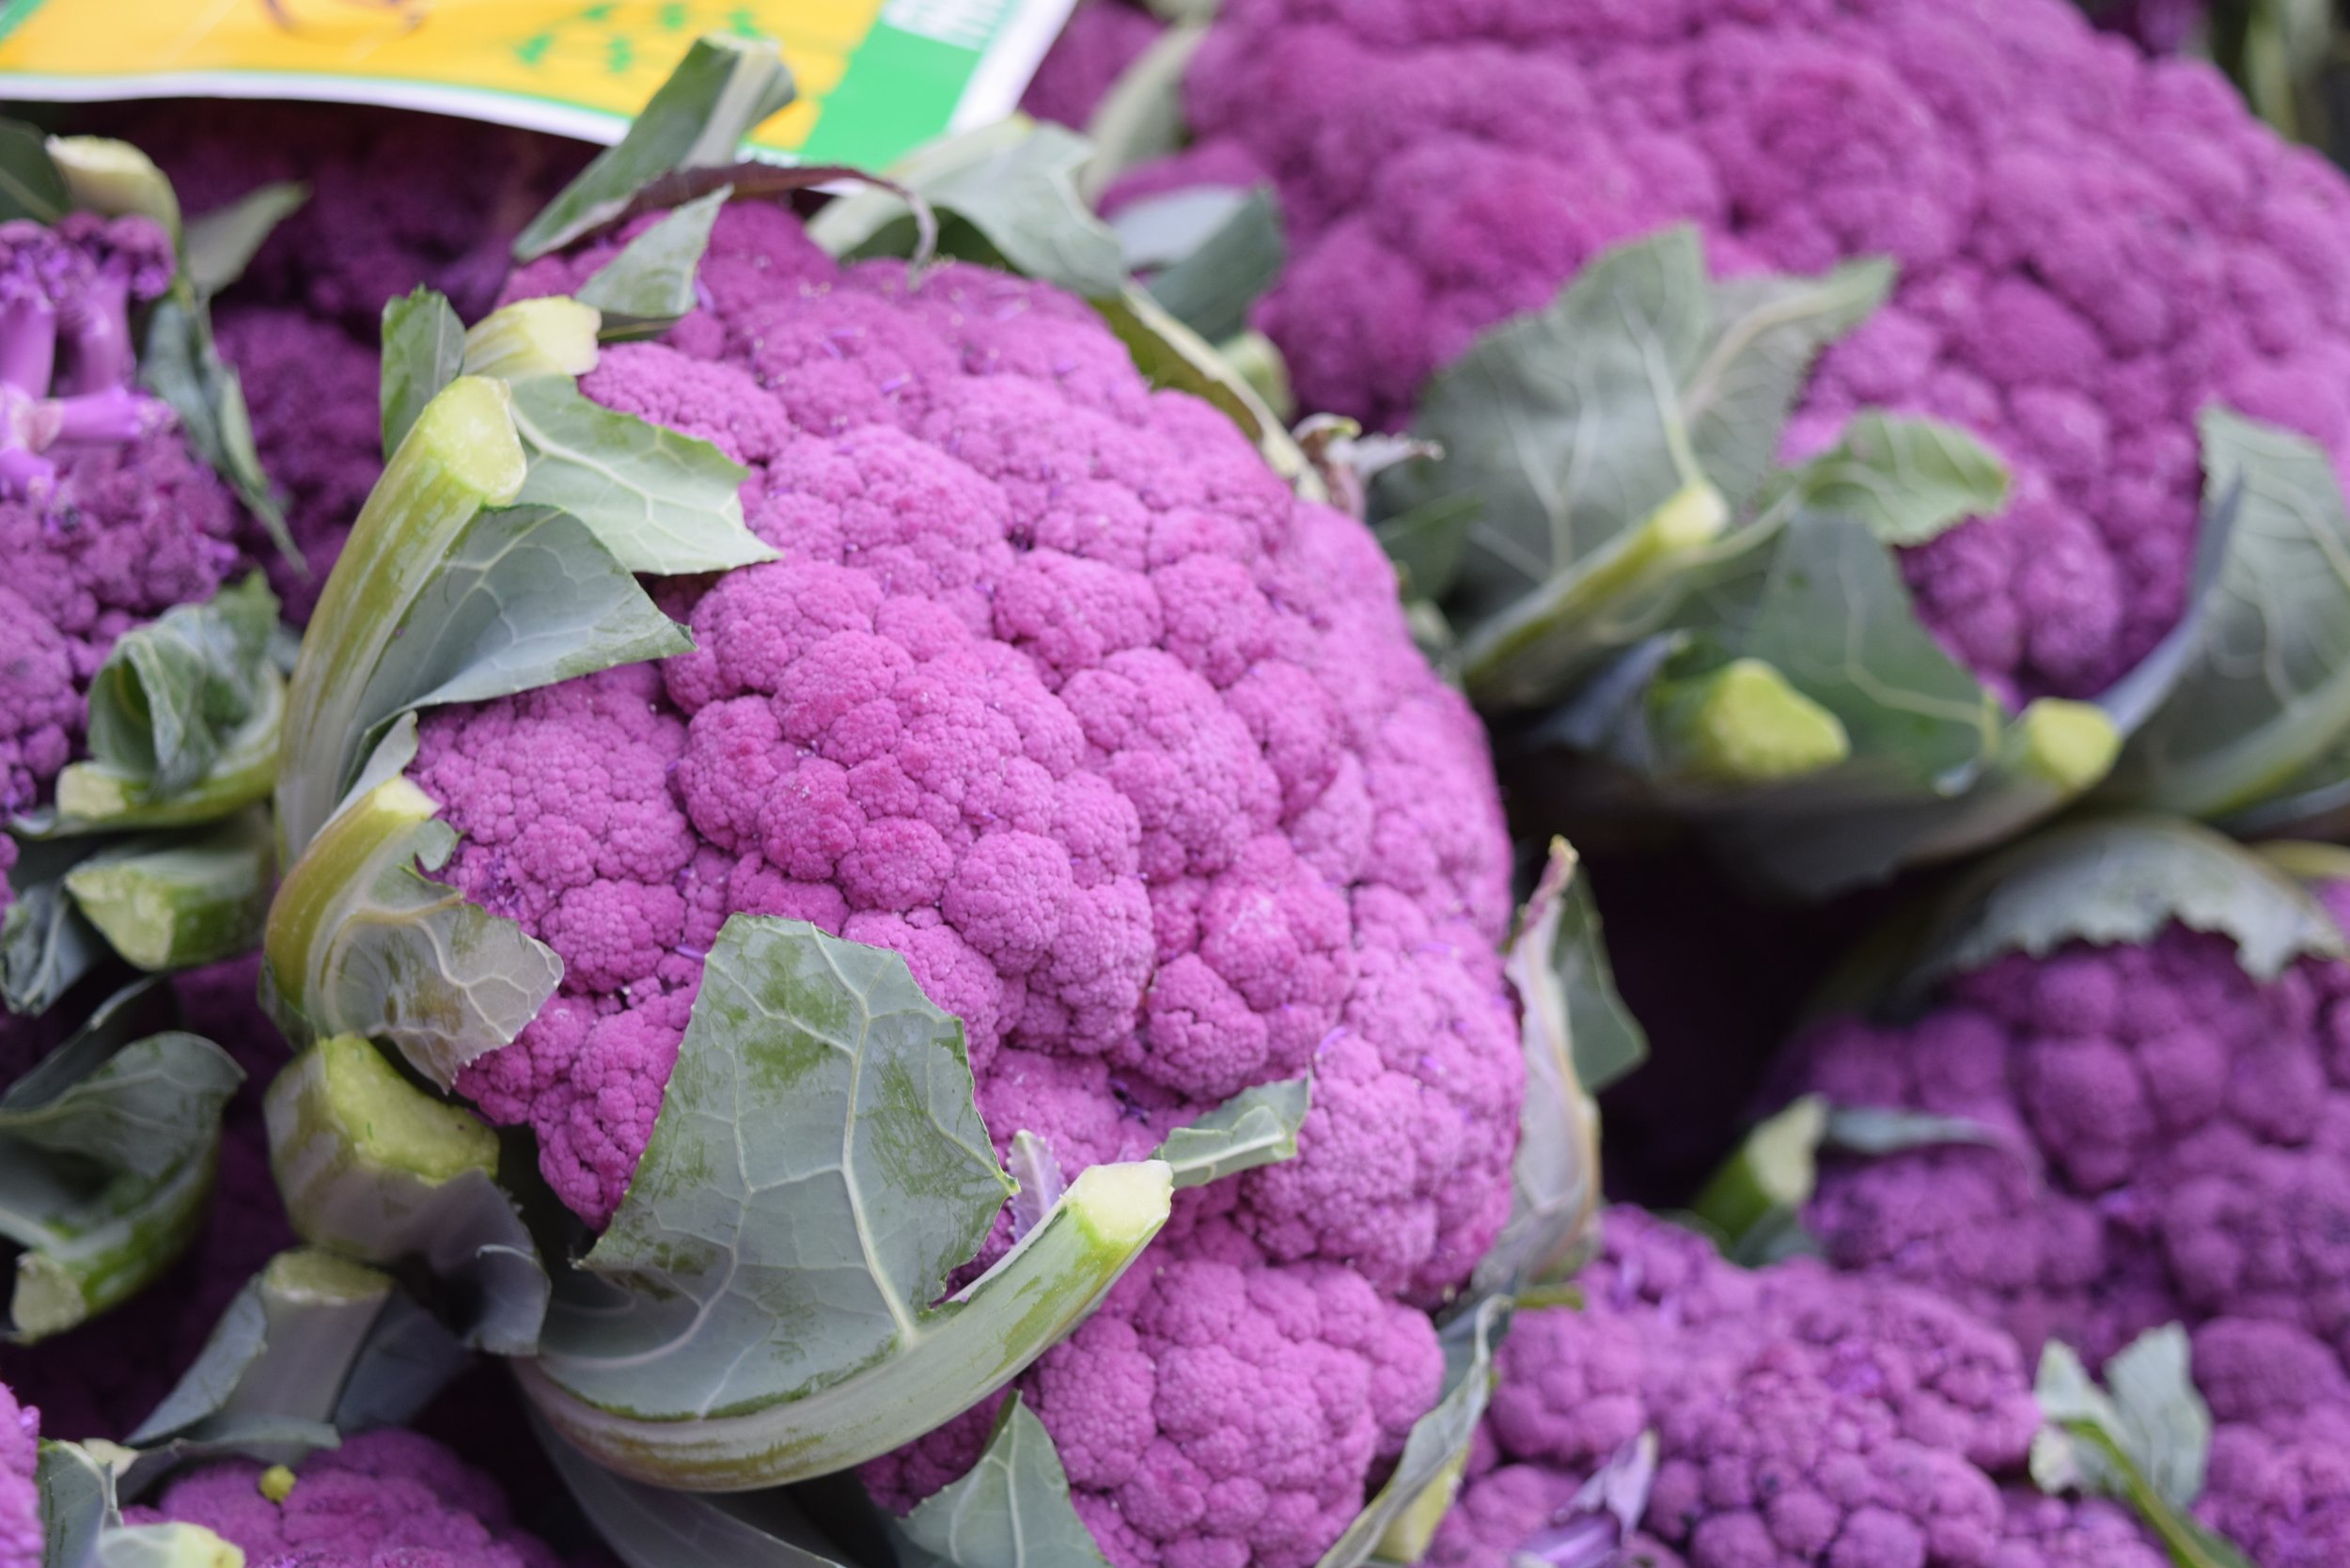 Anthocyanins give blue and purple foods, including purple cauliflower, their color. ( Pixabay.com photo )